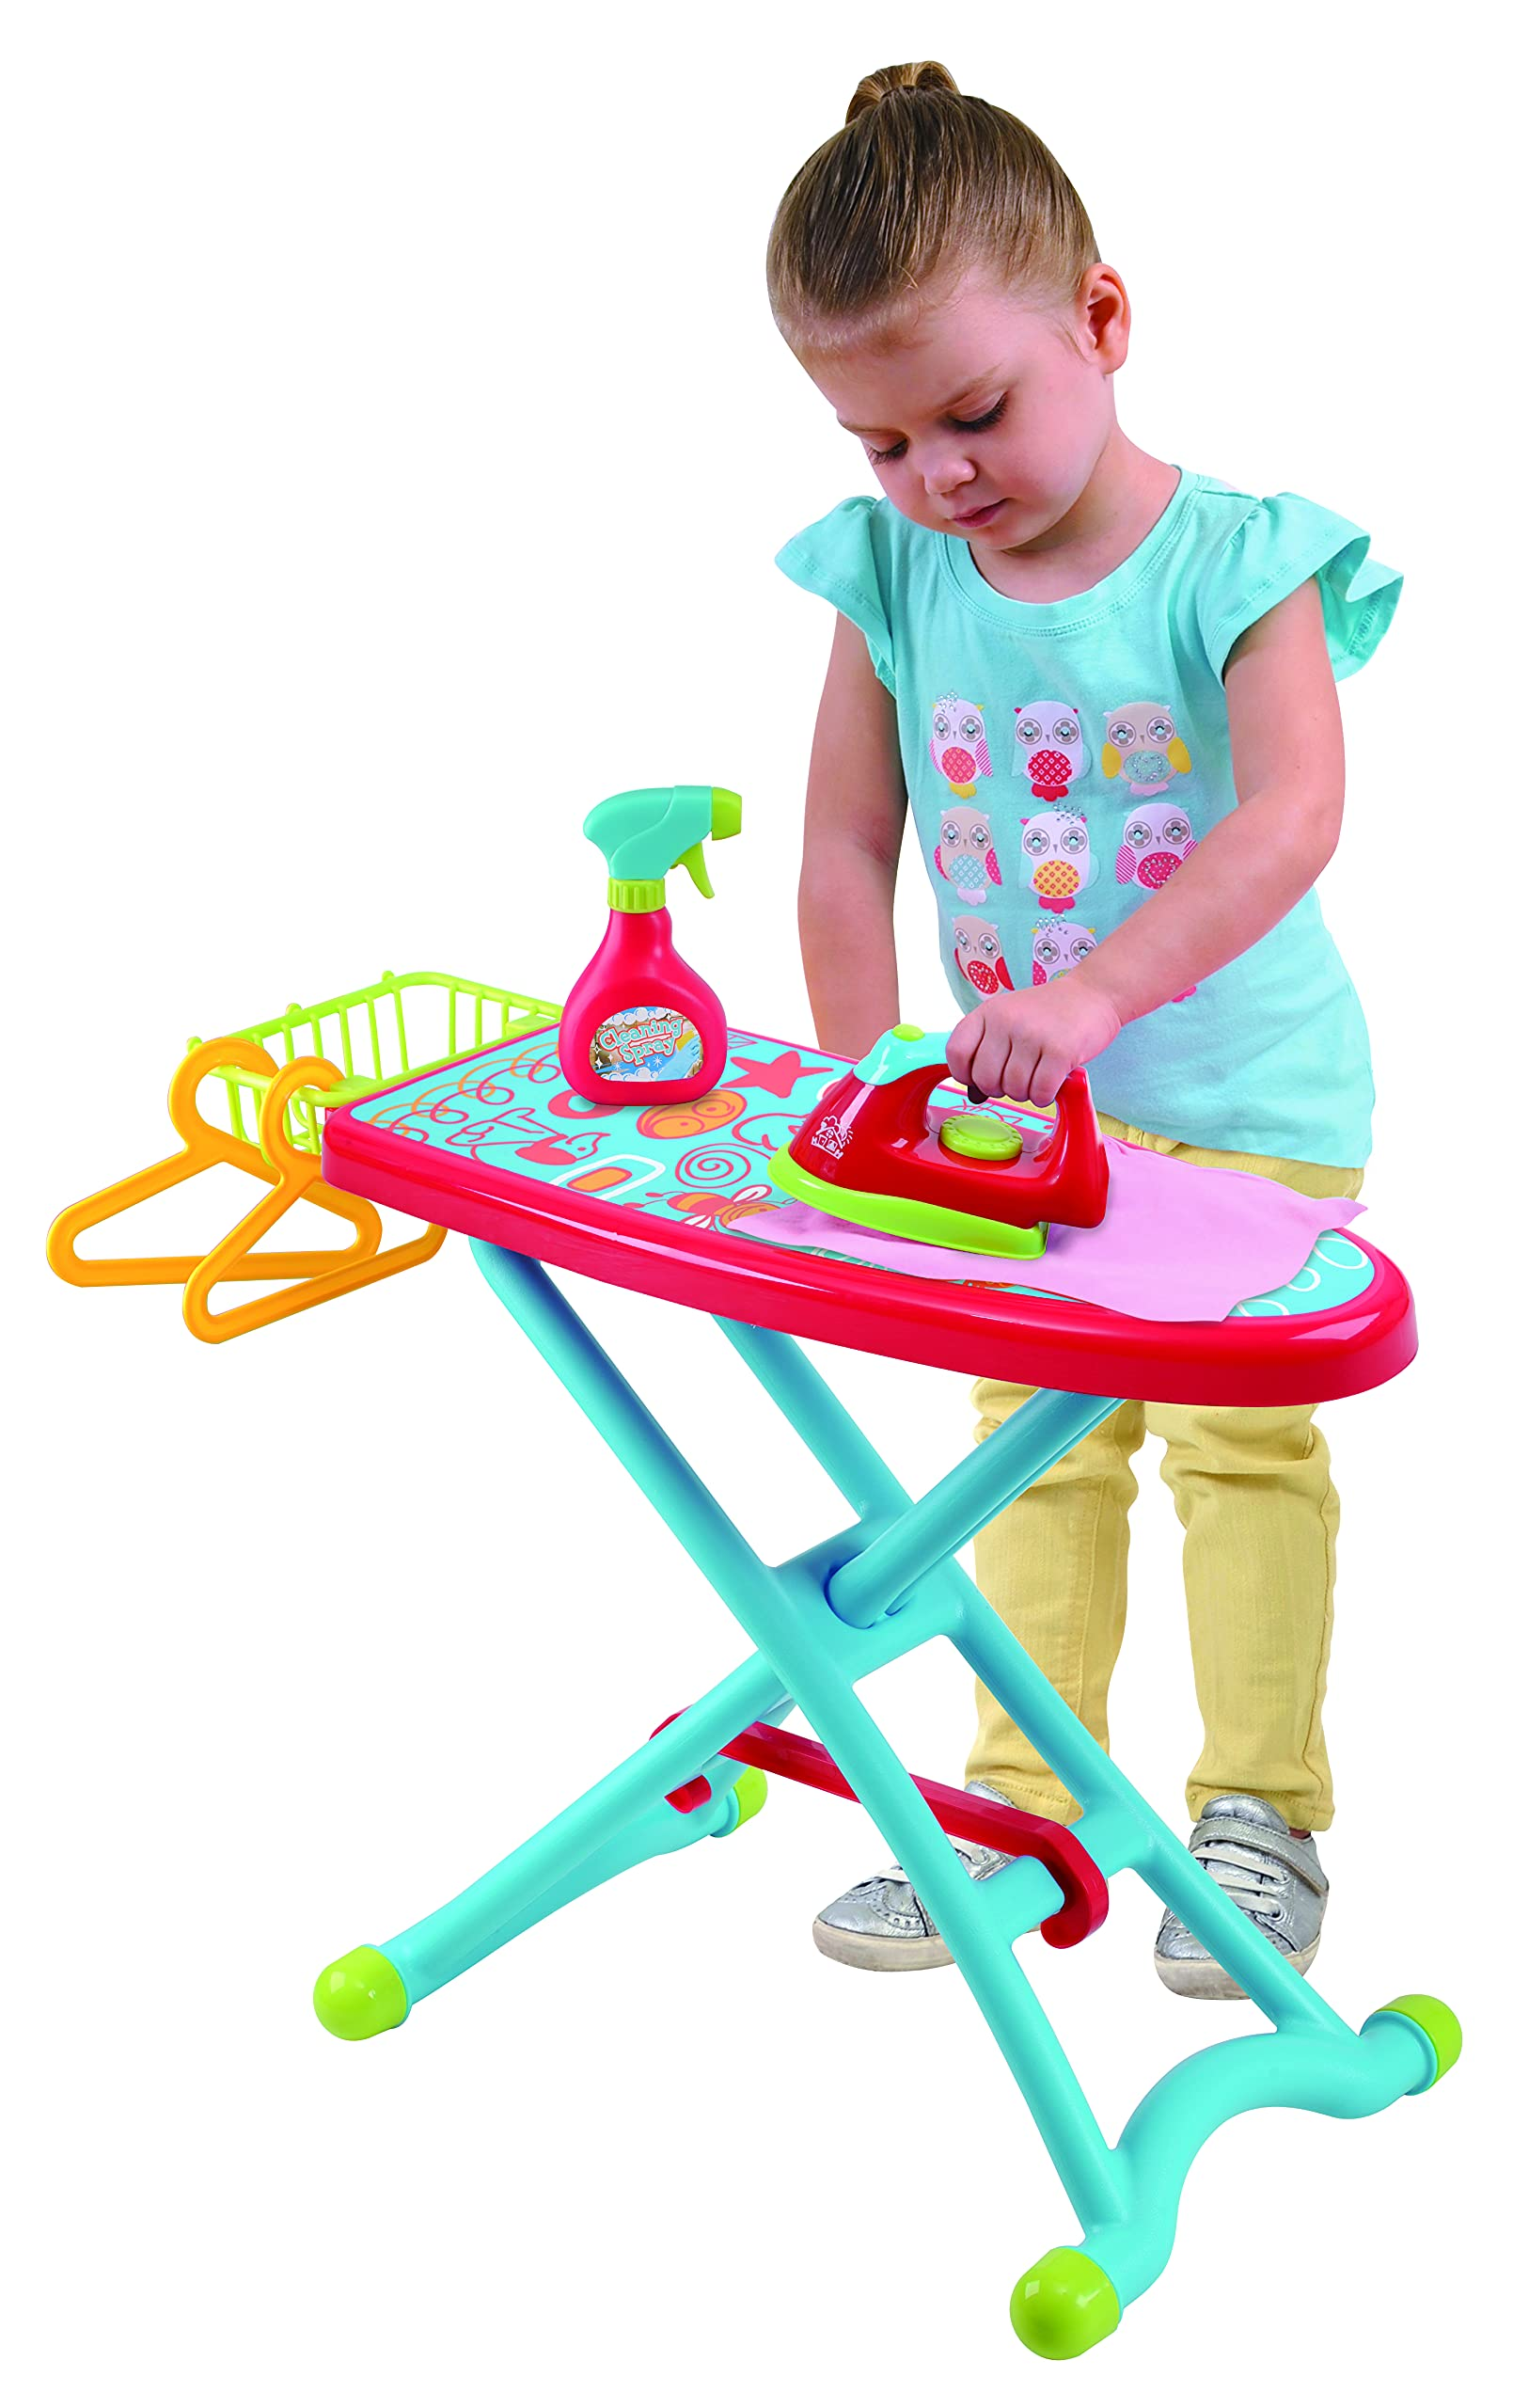 PlayGo Housework Ironing Children Kid's Toy Clothing Iron Board Playset 6Piece - Clothes Iron, Ironing Board, & Accessories, Multicolor (3380)